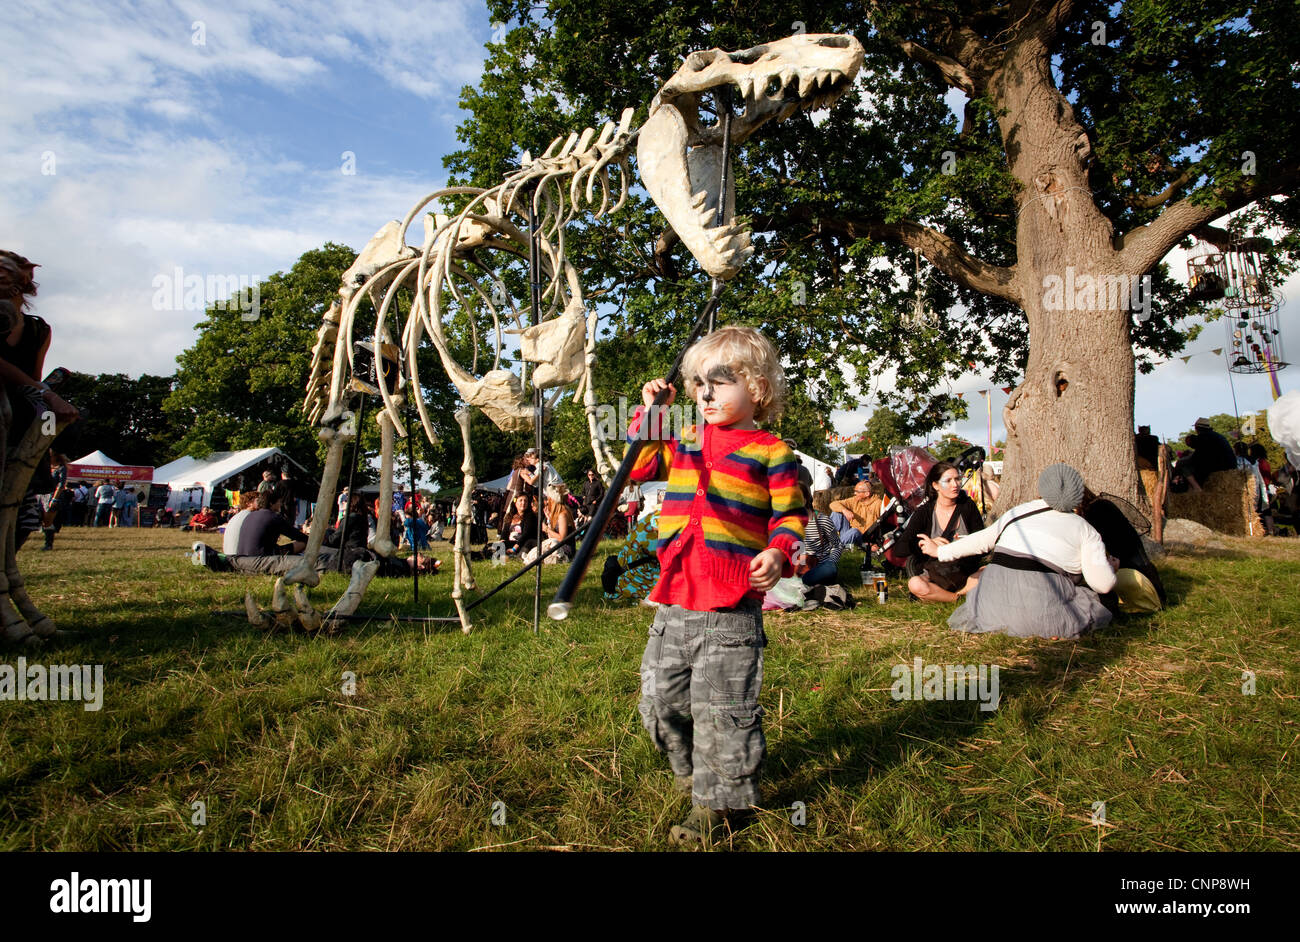 Child playing with a life size replica of a dinosaur skeleton at Playgroup Festival in Kent.Stock Photo